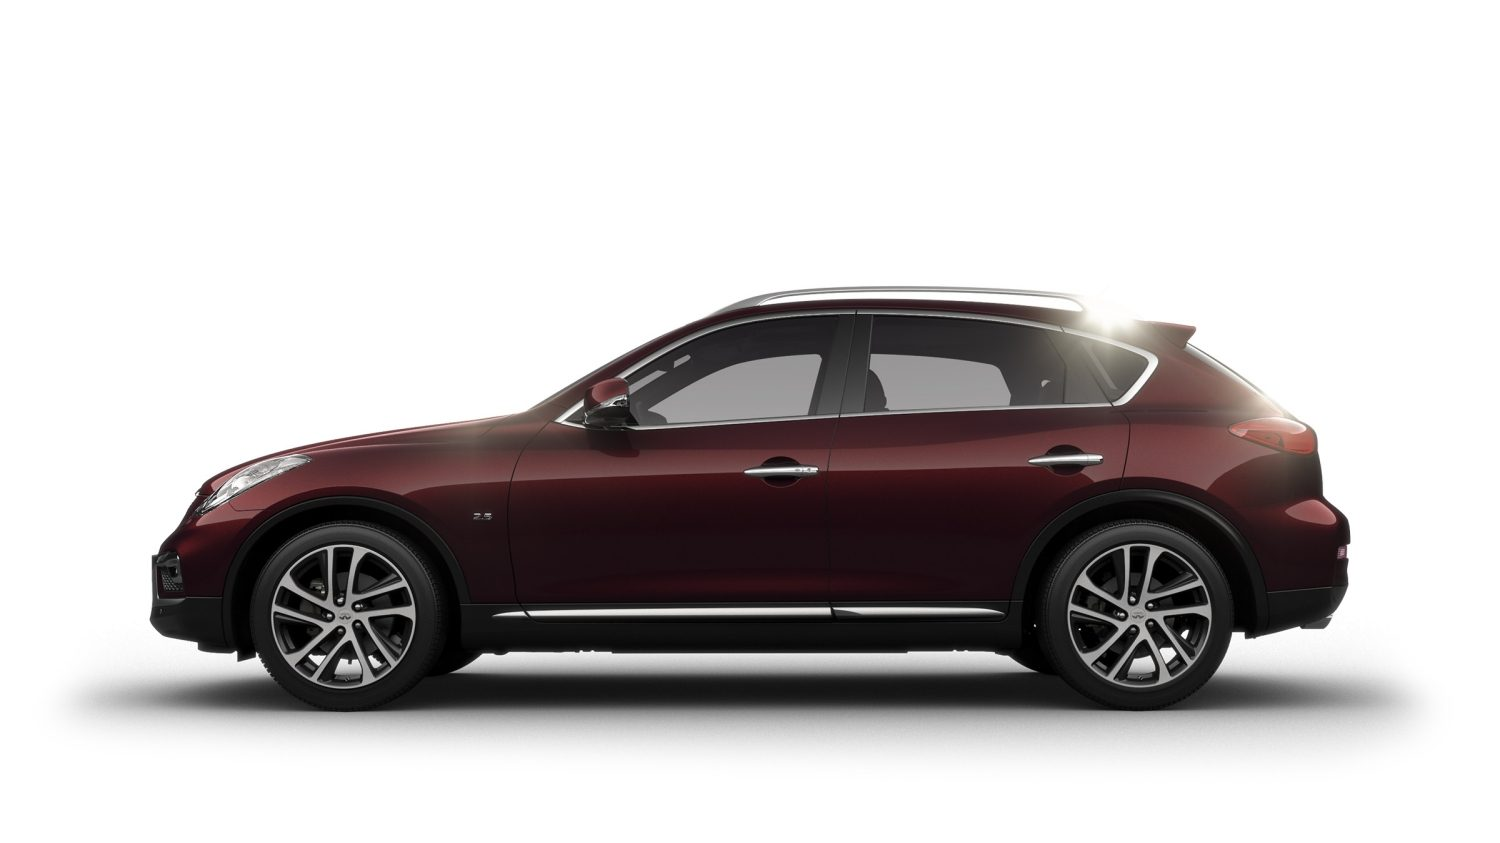 consider the introduction of the infiniti Here's another reason to get excited about the upcoming release of 2016 q50 sports sedan infiniti recently announced the introduction of a trio of powerful turbo engines that will be available in the q50 for the first time ever.